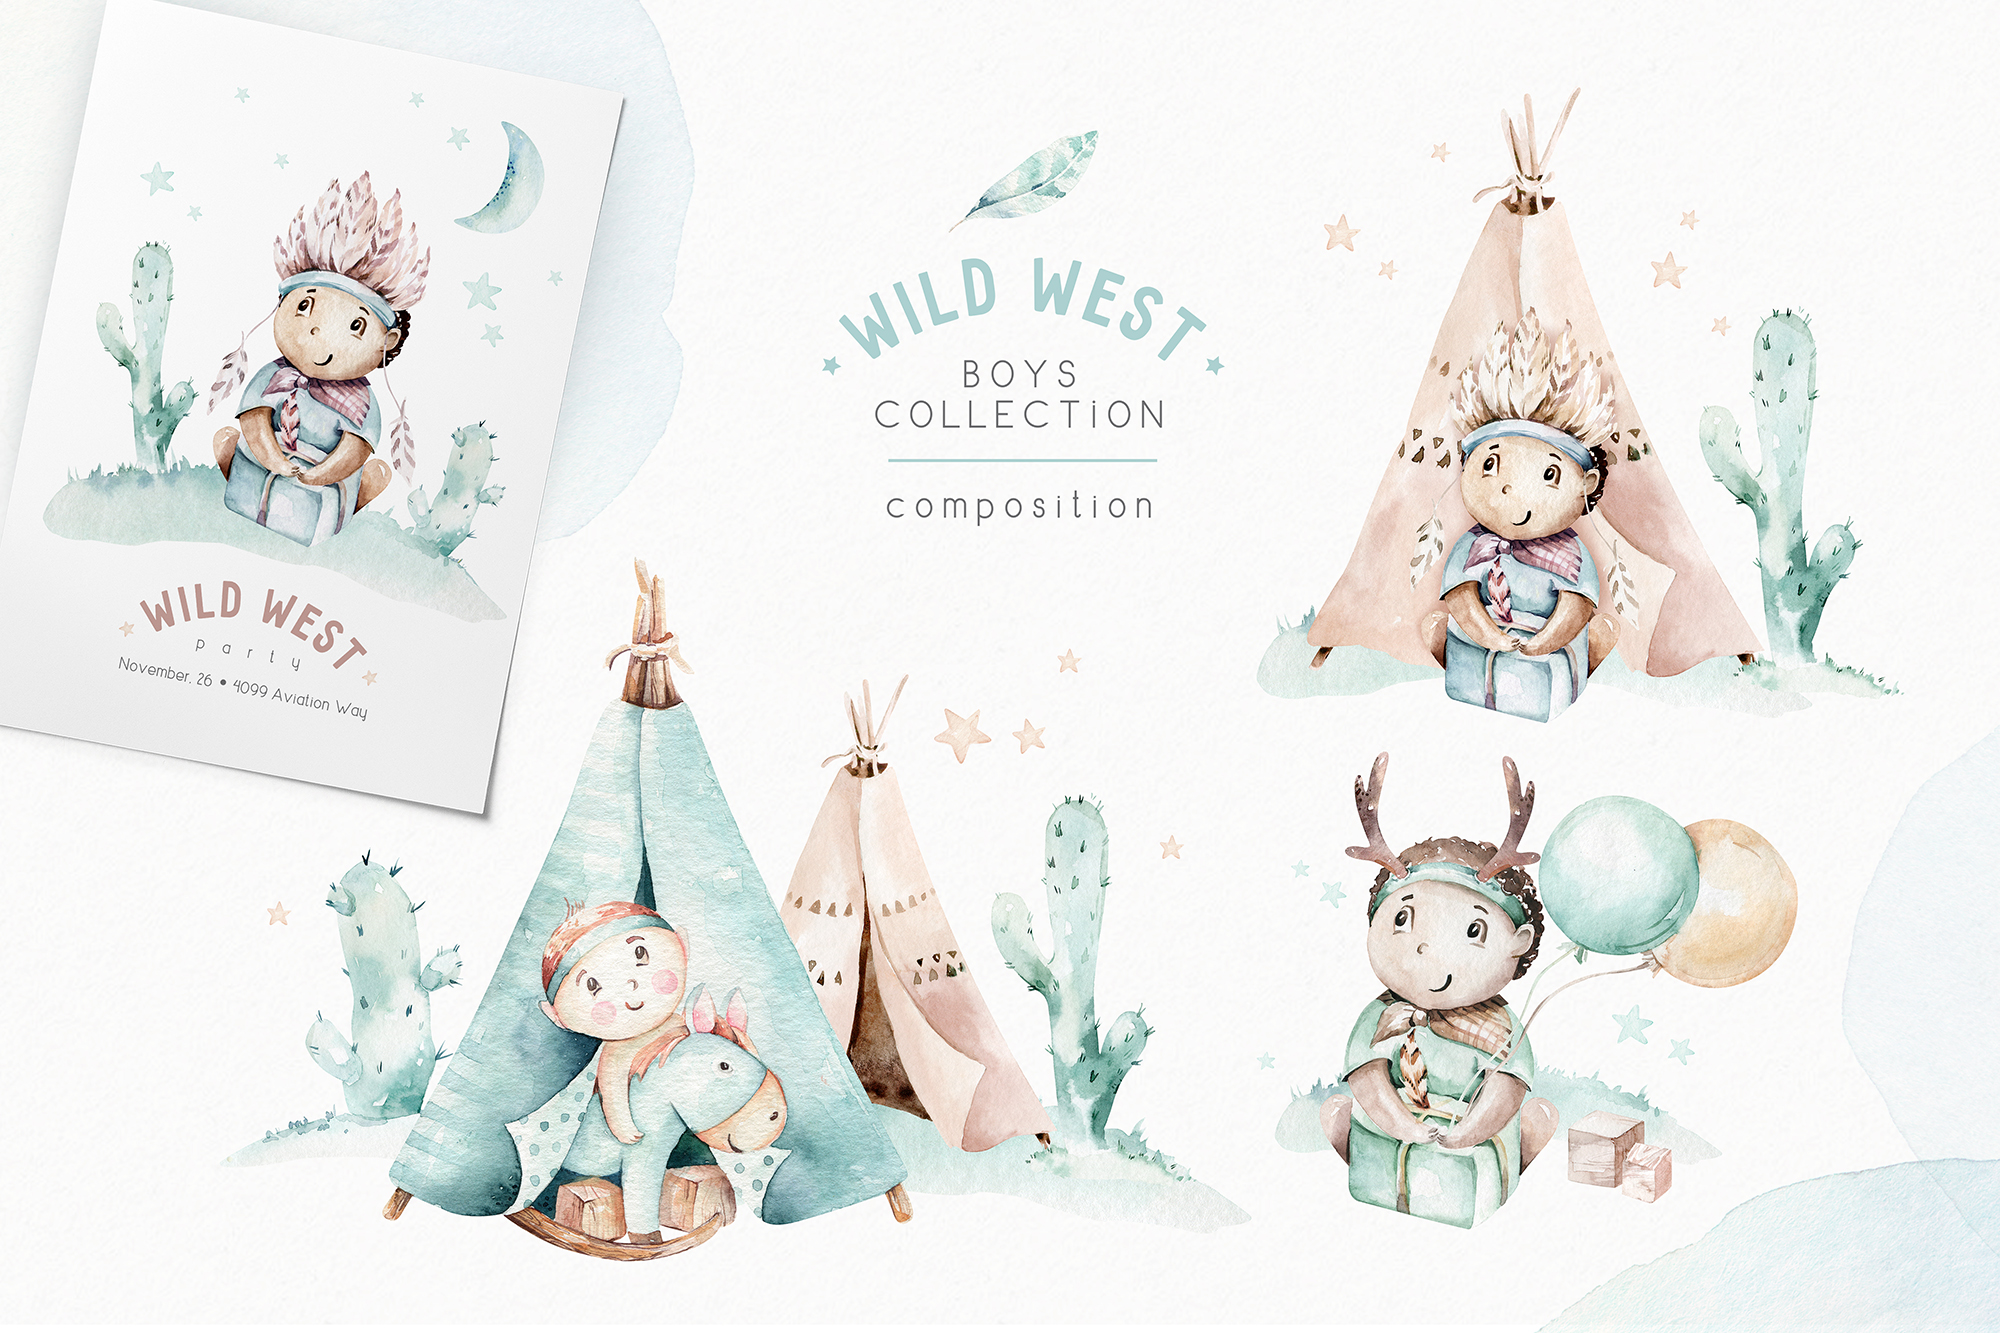 Wild West Set - Boys World Watercolor Collection